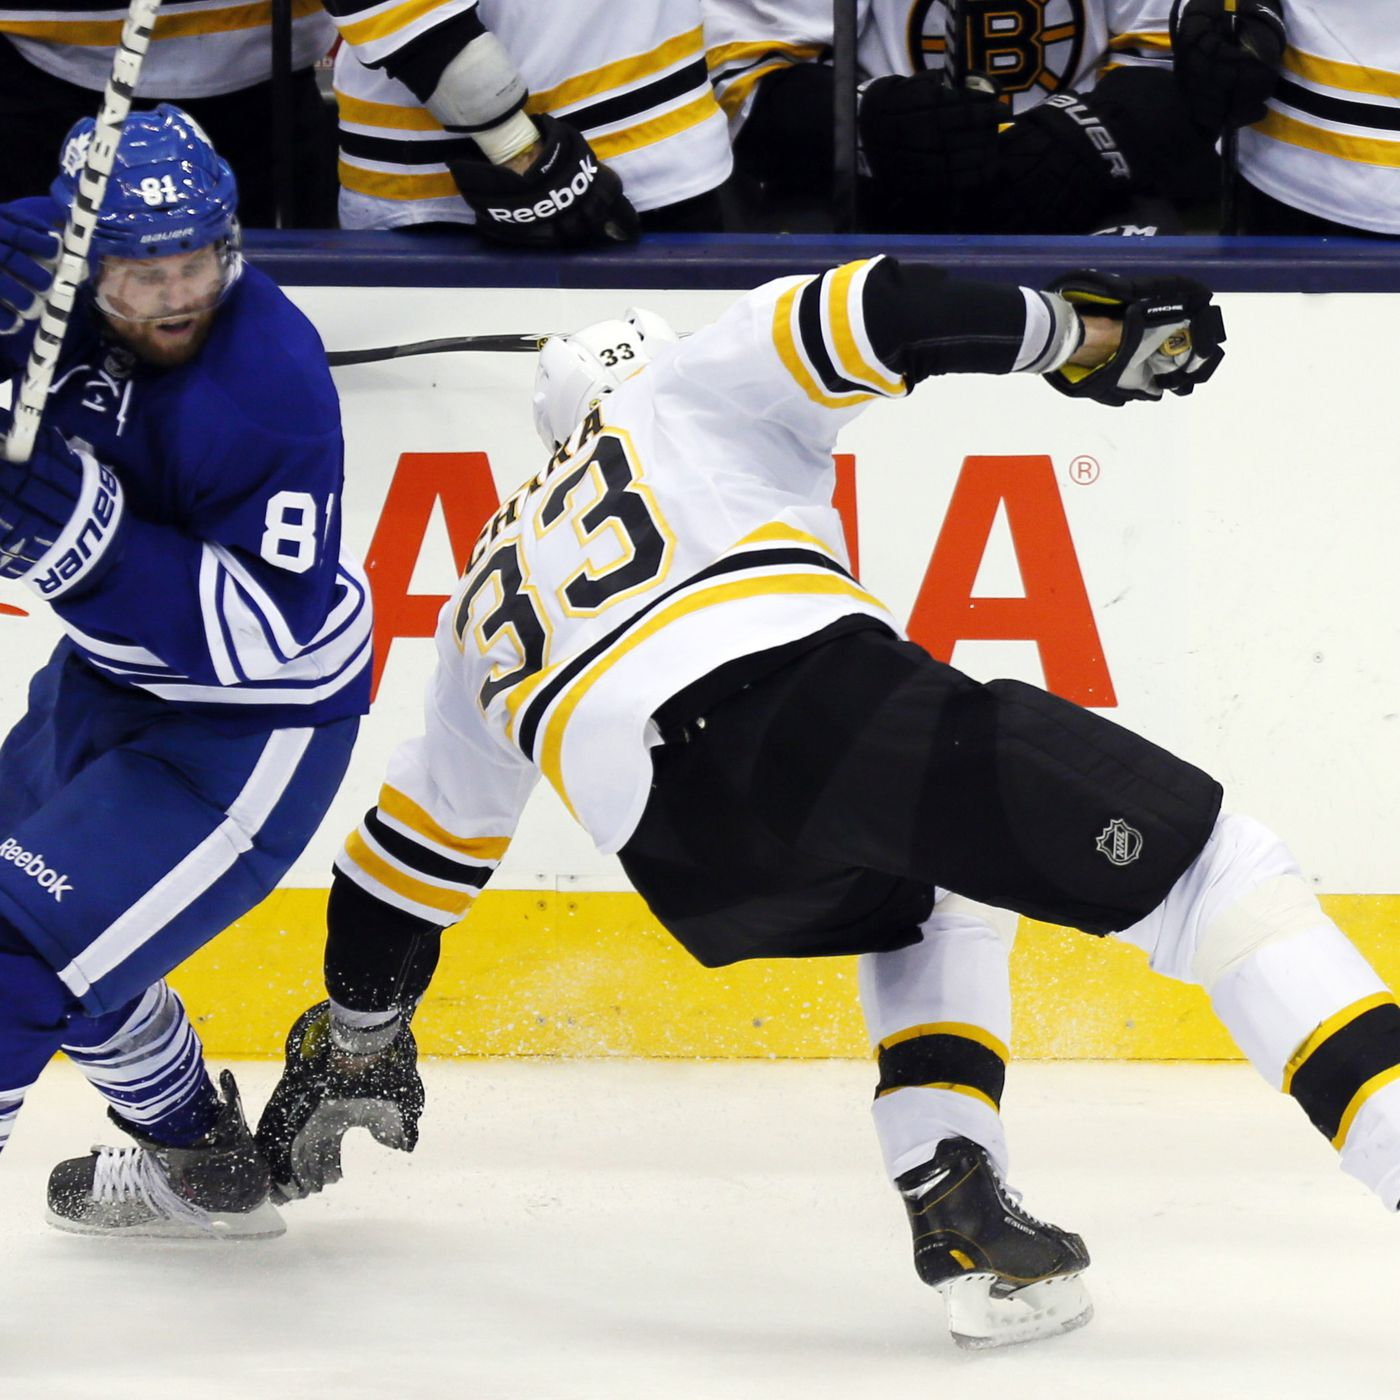 Stanley Cup Playoffs 2013 Maple Leafs Vs Bruins Game 7 Time Tv Schedule And More Sbnation Com